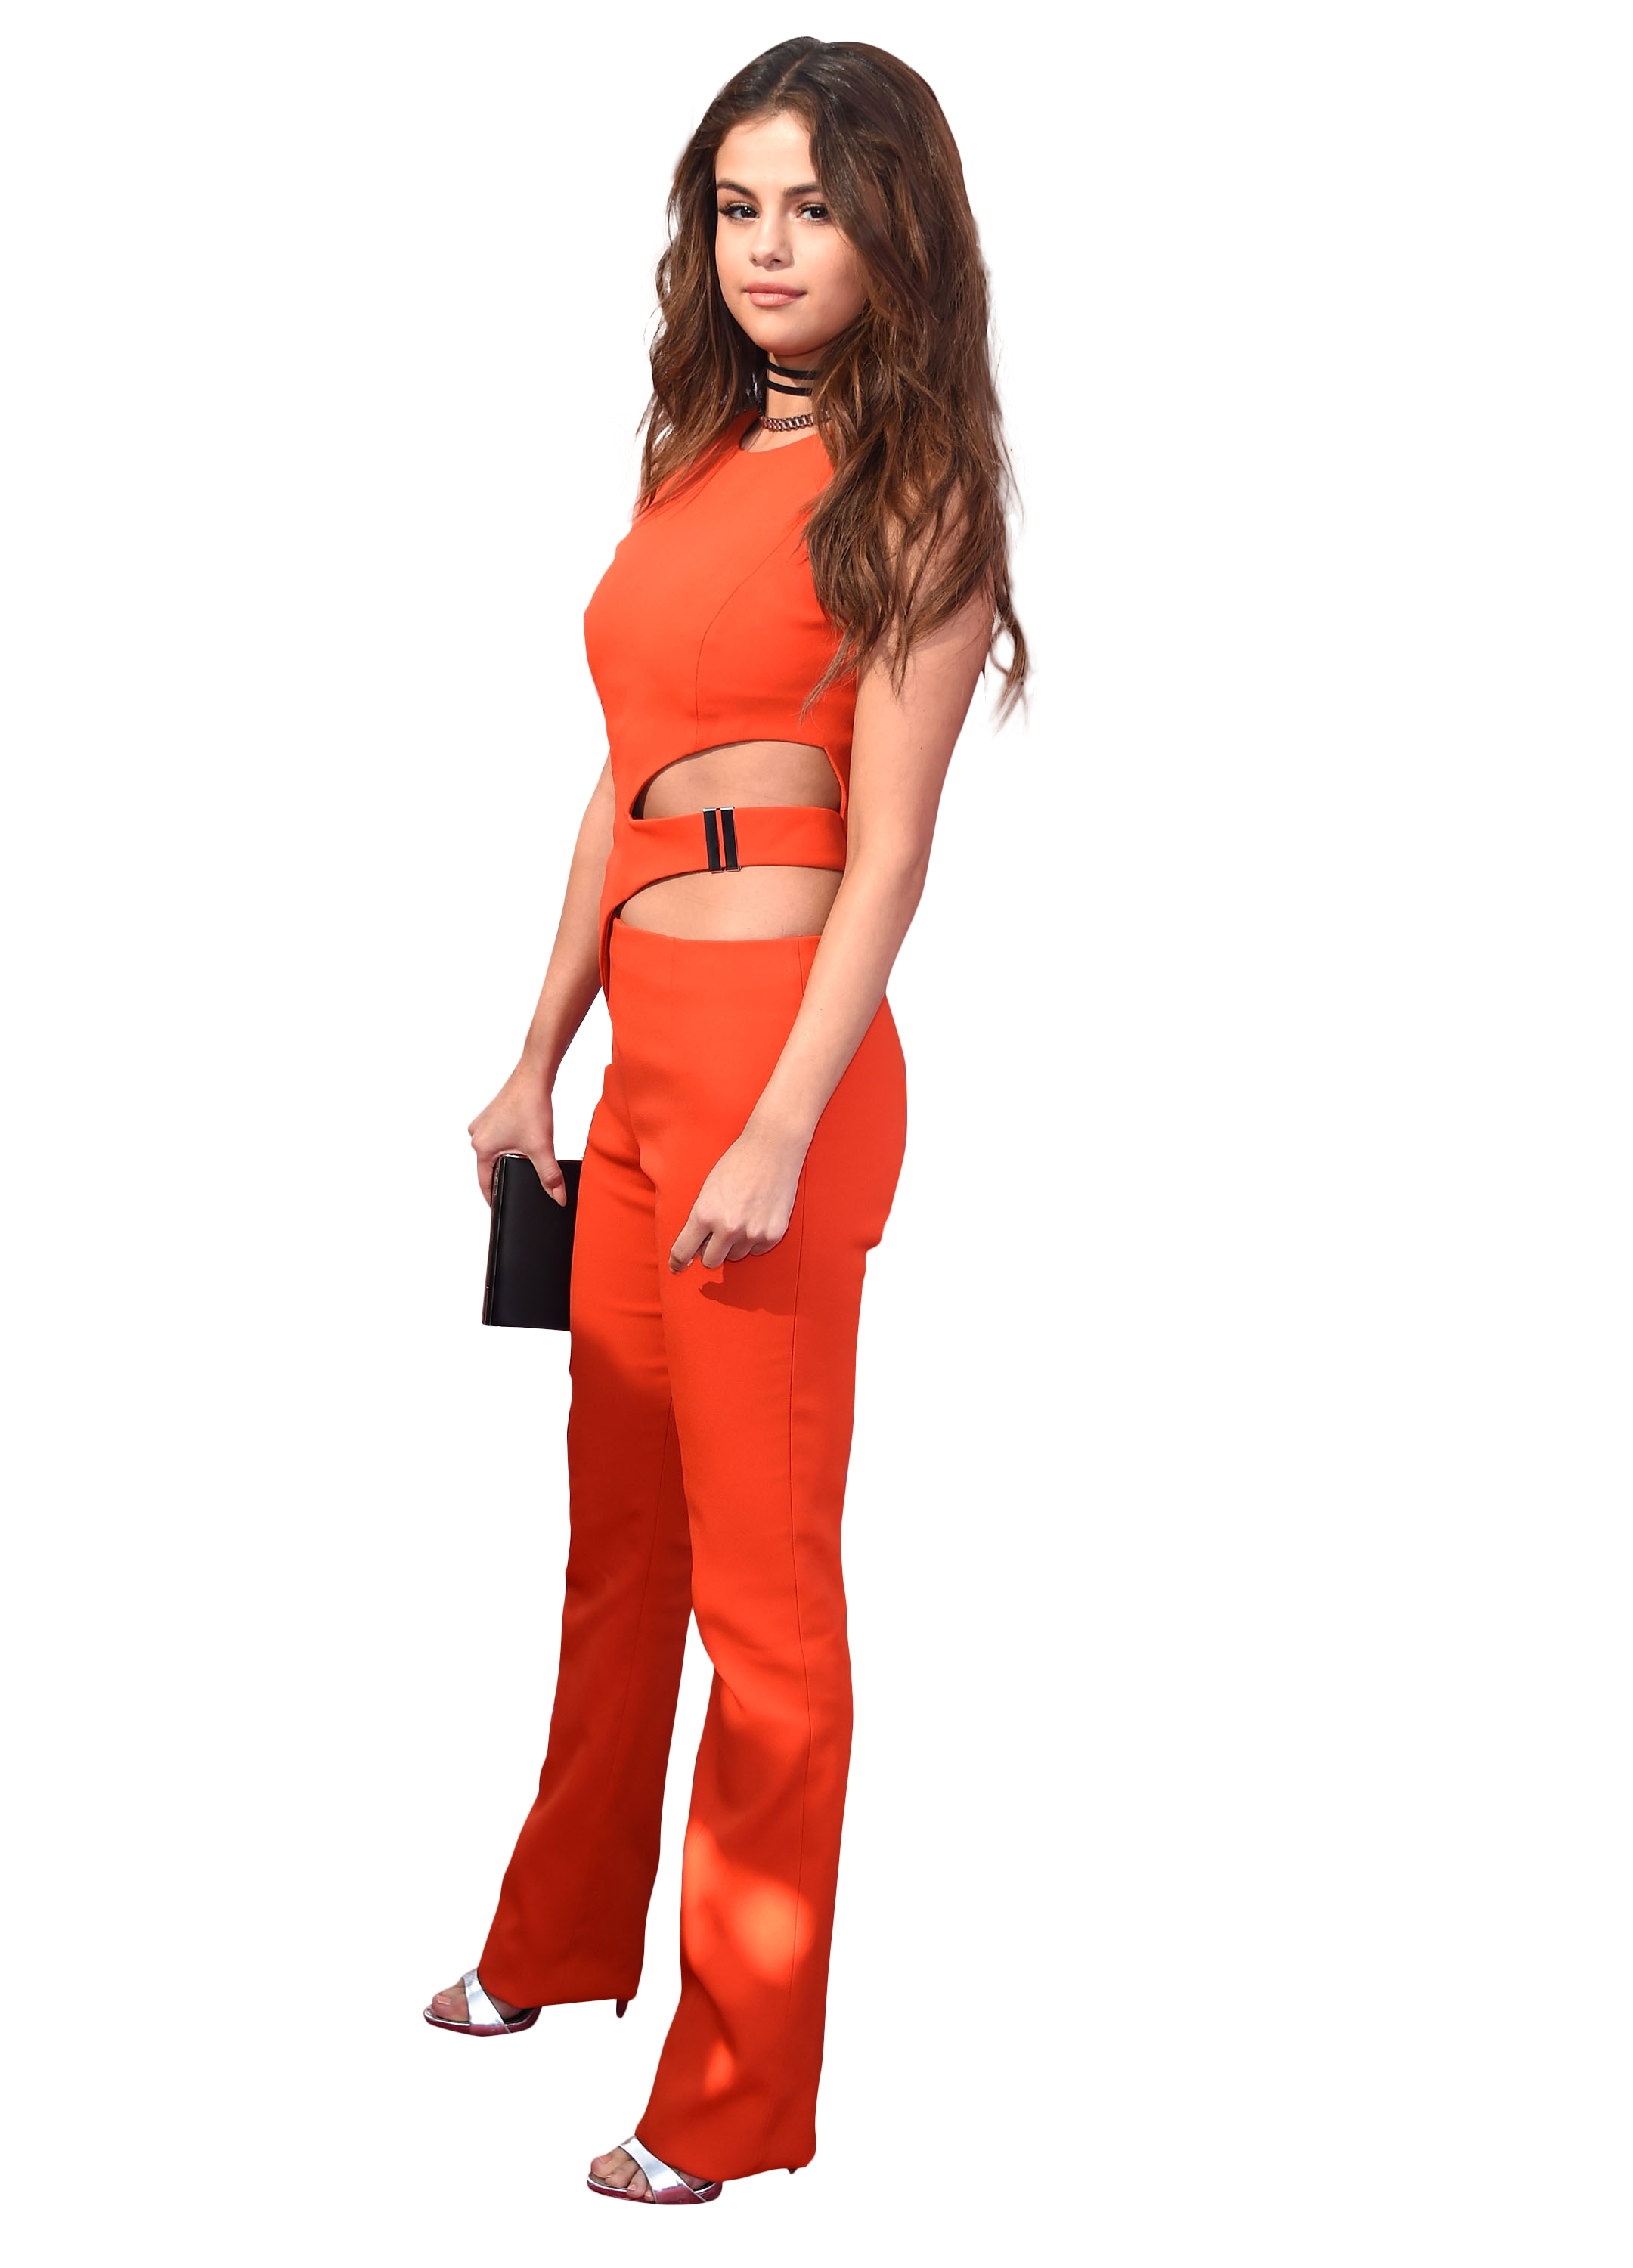 Selena Gomez In A Red Dress Png Image Red Dress Dresses Dress Png